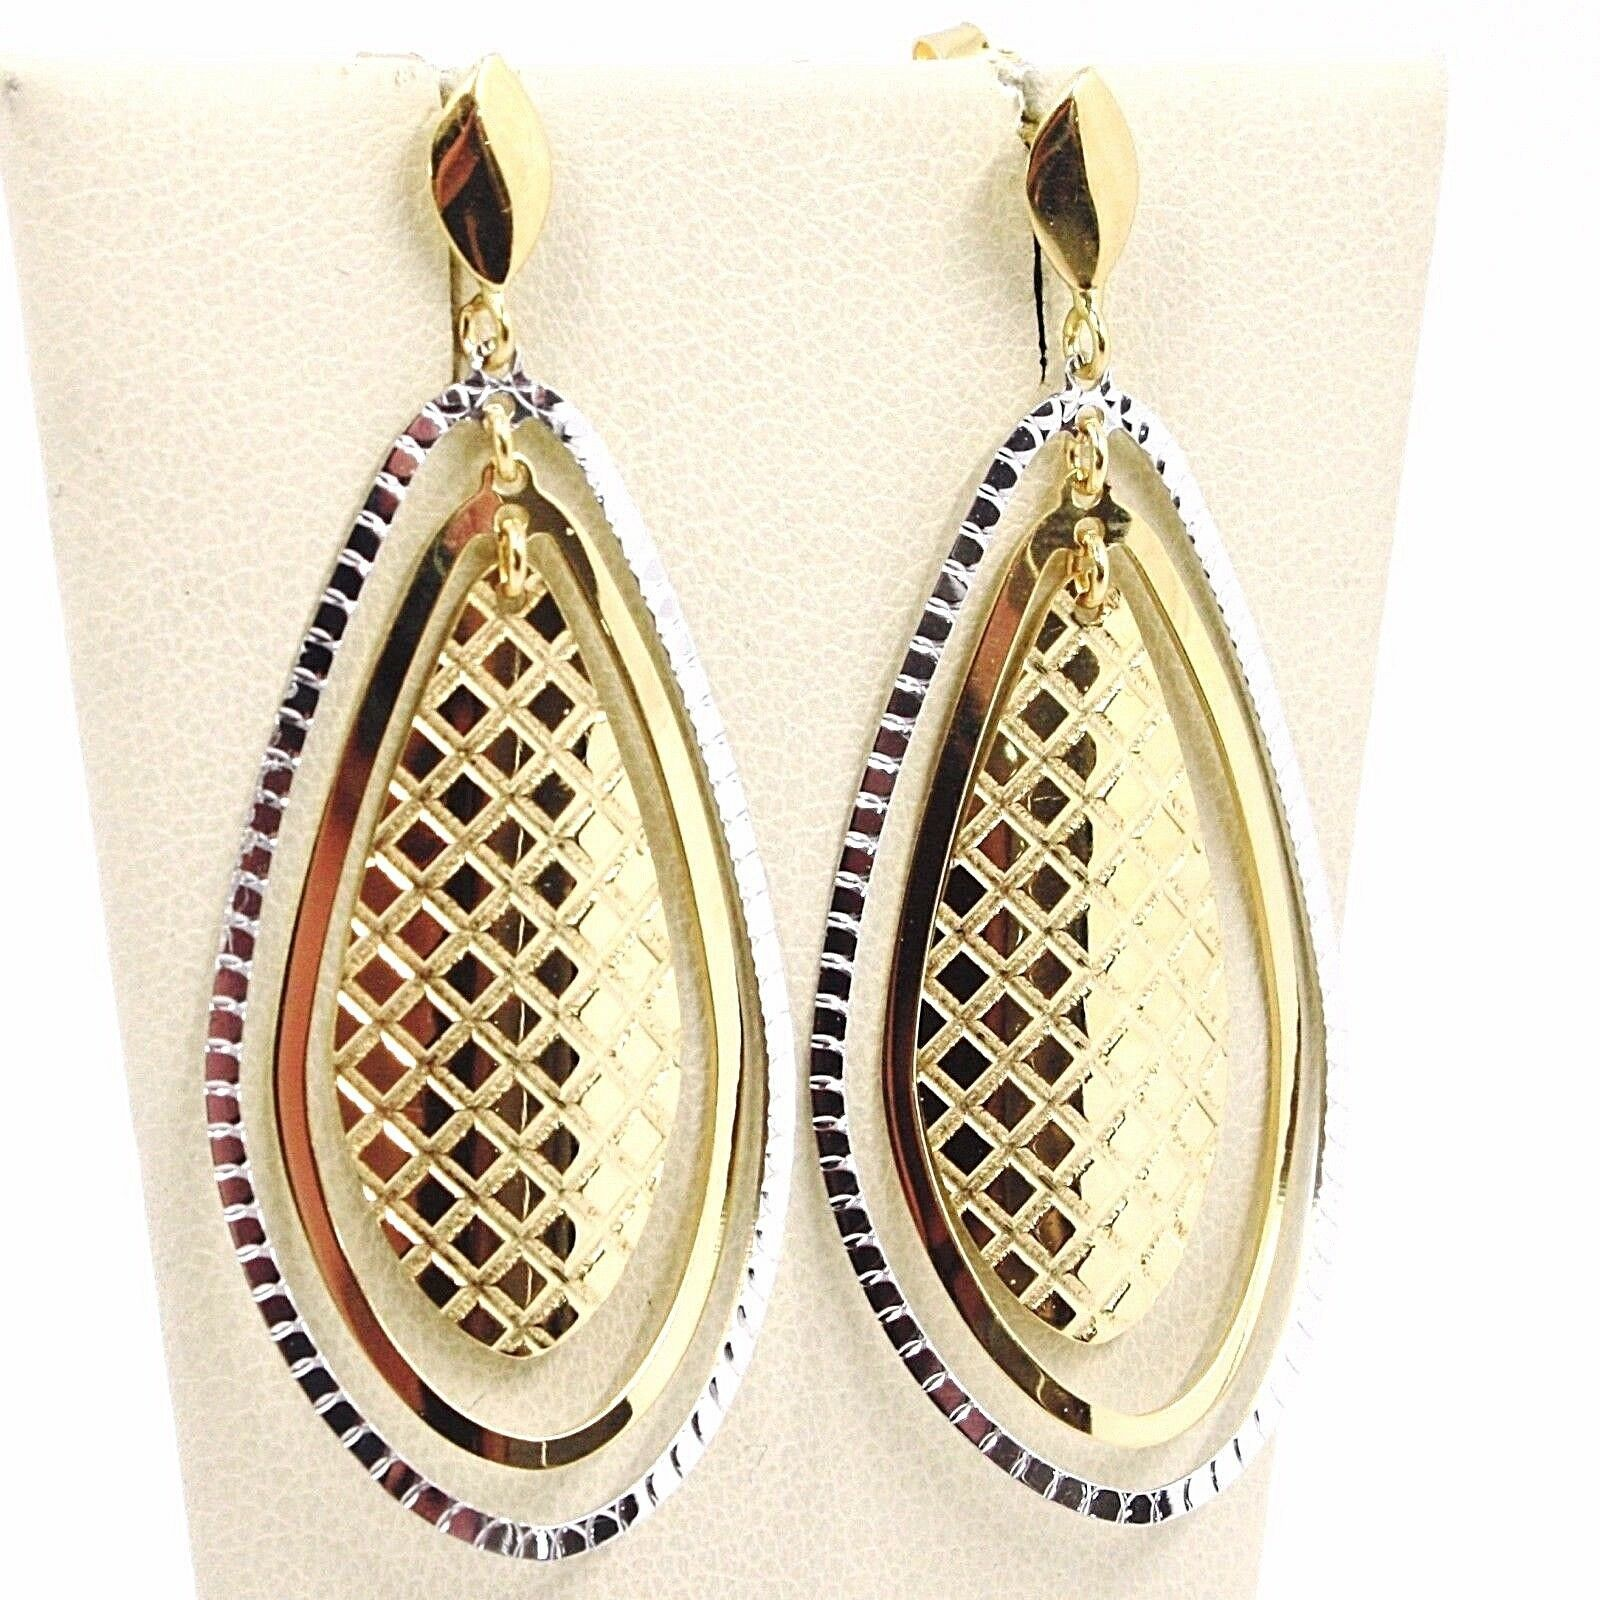 Drop Earrings Yellow Gold White 750 18K, Triple Drop, Made in Italy